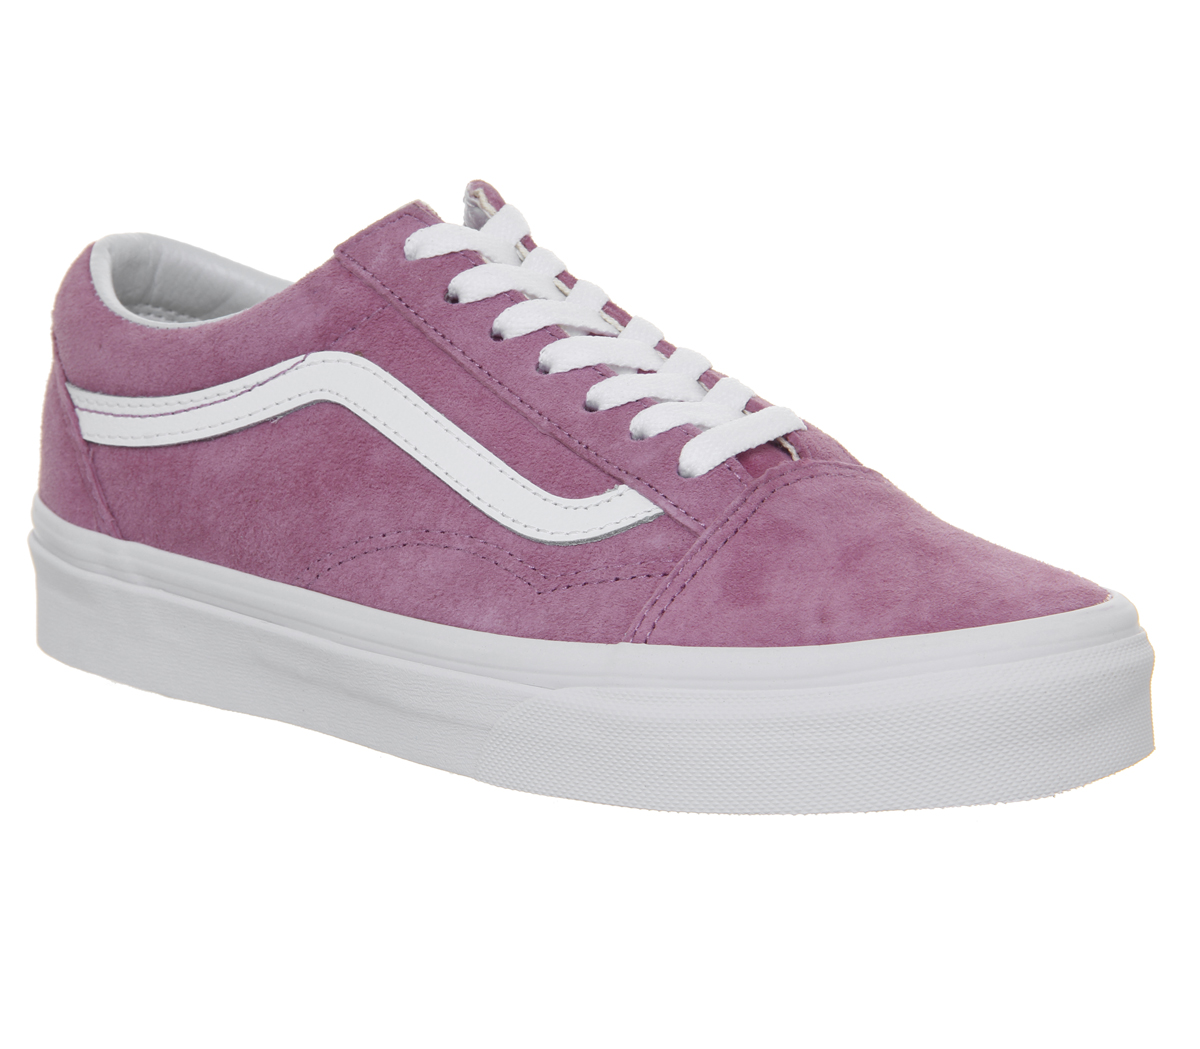 5cd0a9a573f Sentinel Womens Vans Old Skool Trainers Violet True White Trainers Shoes